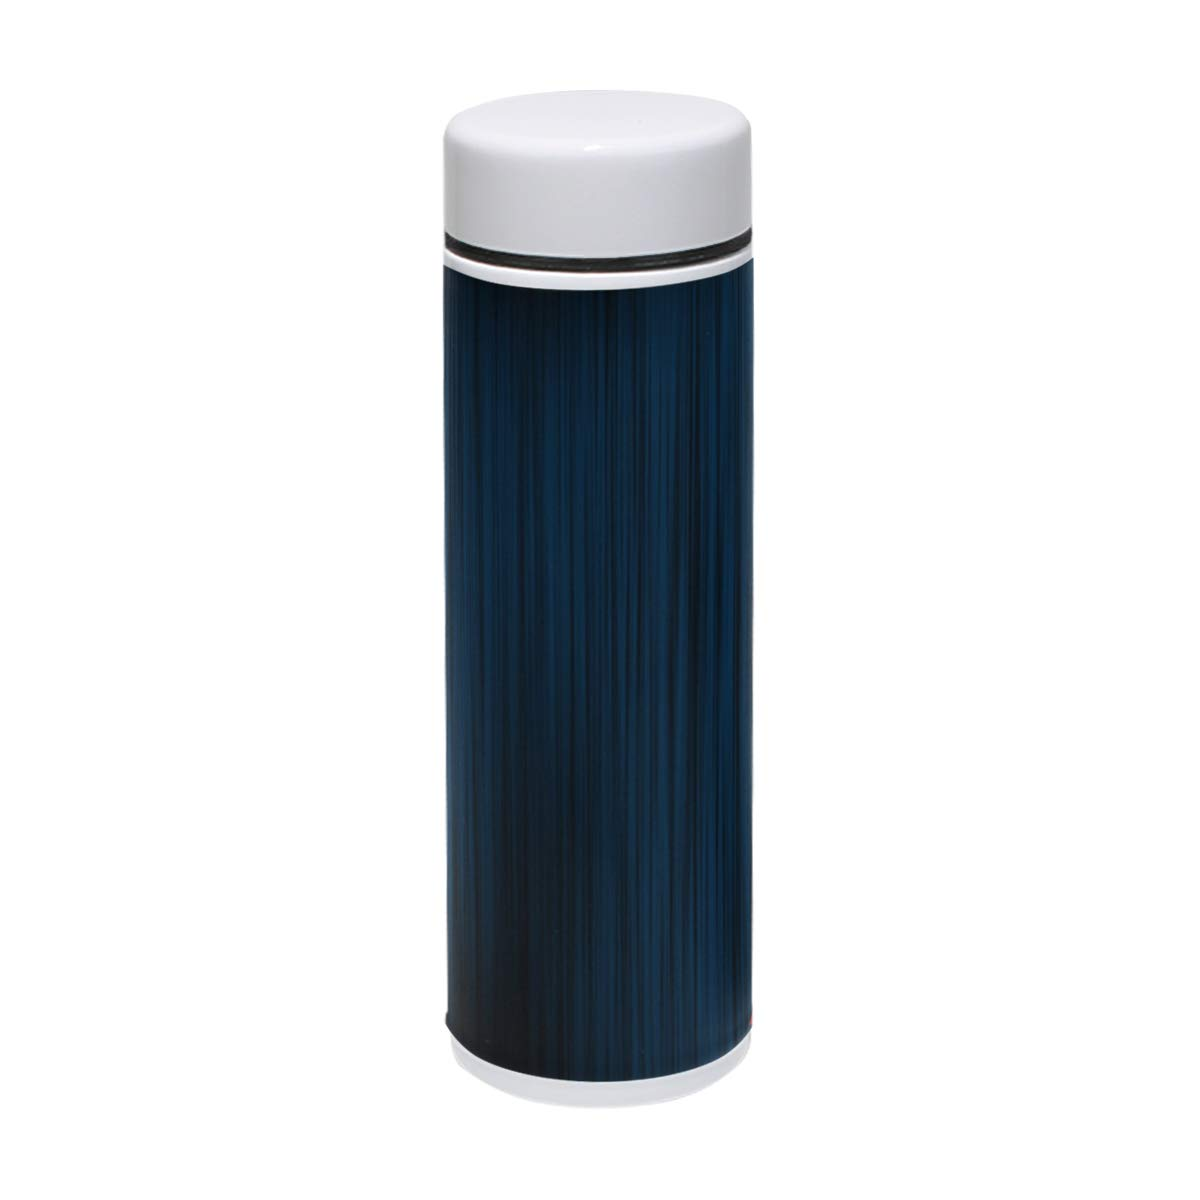 LORVIES Flamenco Dance Stainless Steel Thermos Water Bottle Insulated Vacuum Cup Leak Proof Double Vacuum Bottle for Hot and Cold Drinks Coffee or Tea, Travel Thermal Mug,220 ml/ 7.5oz